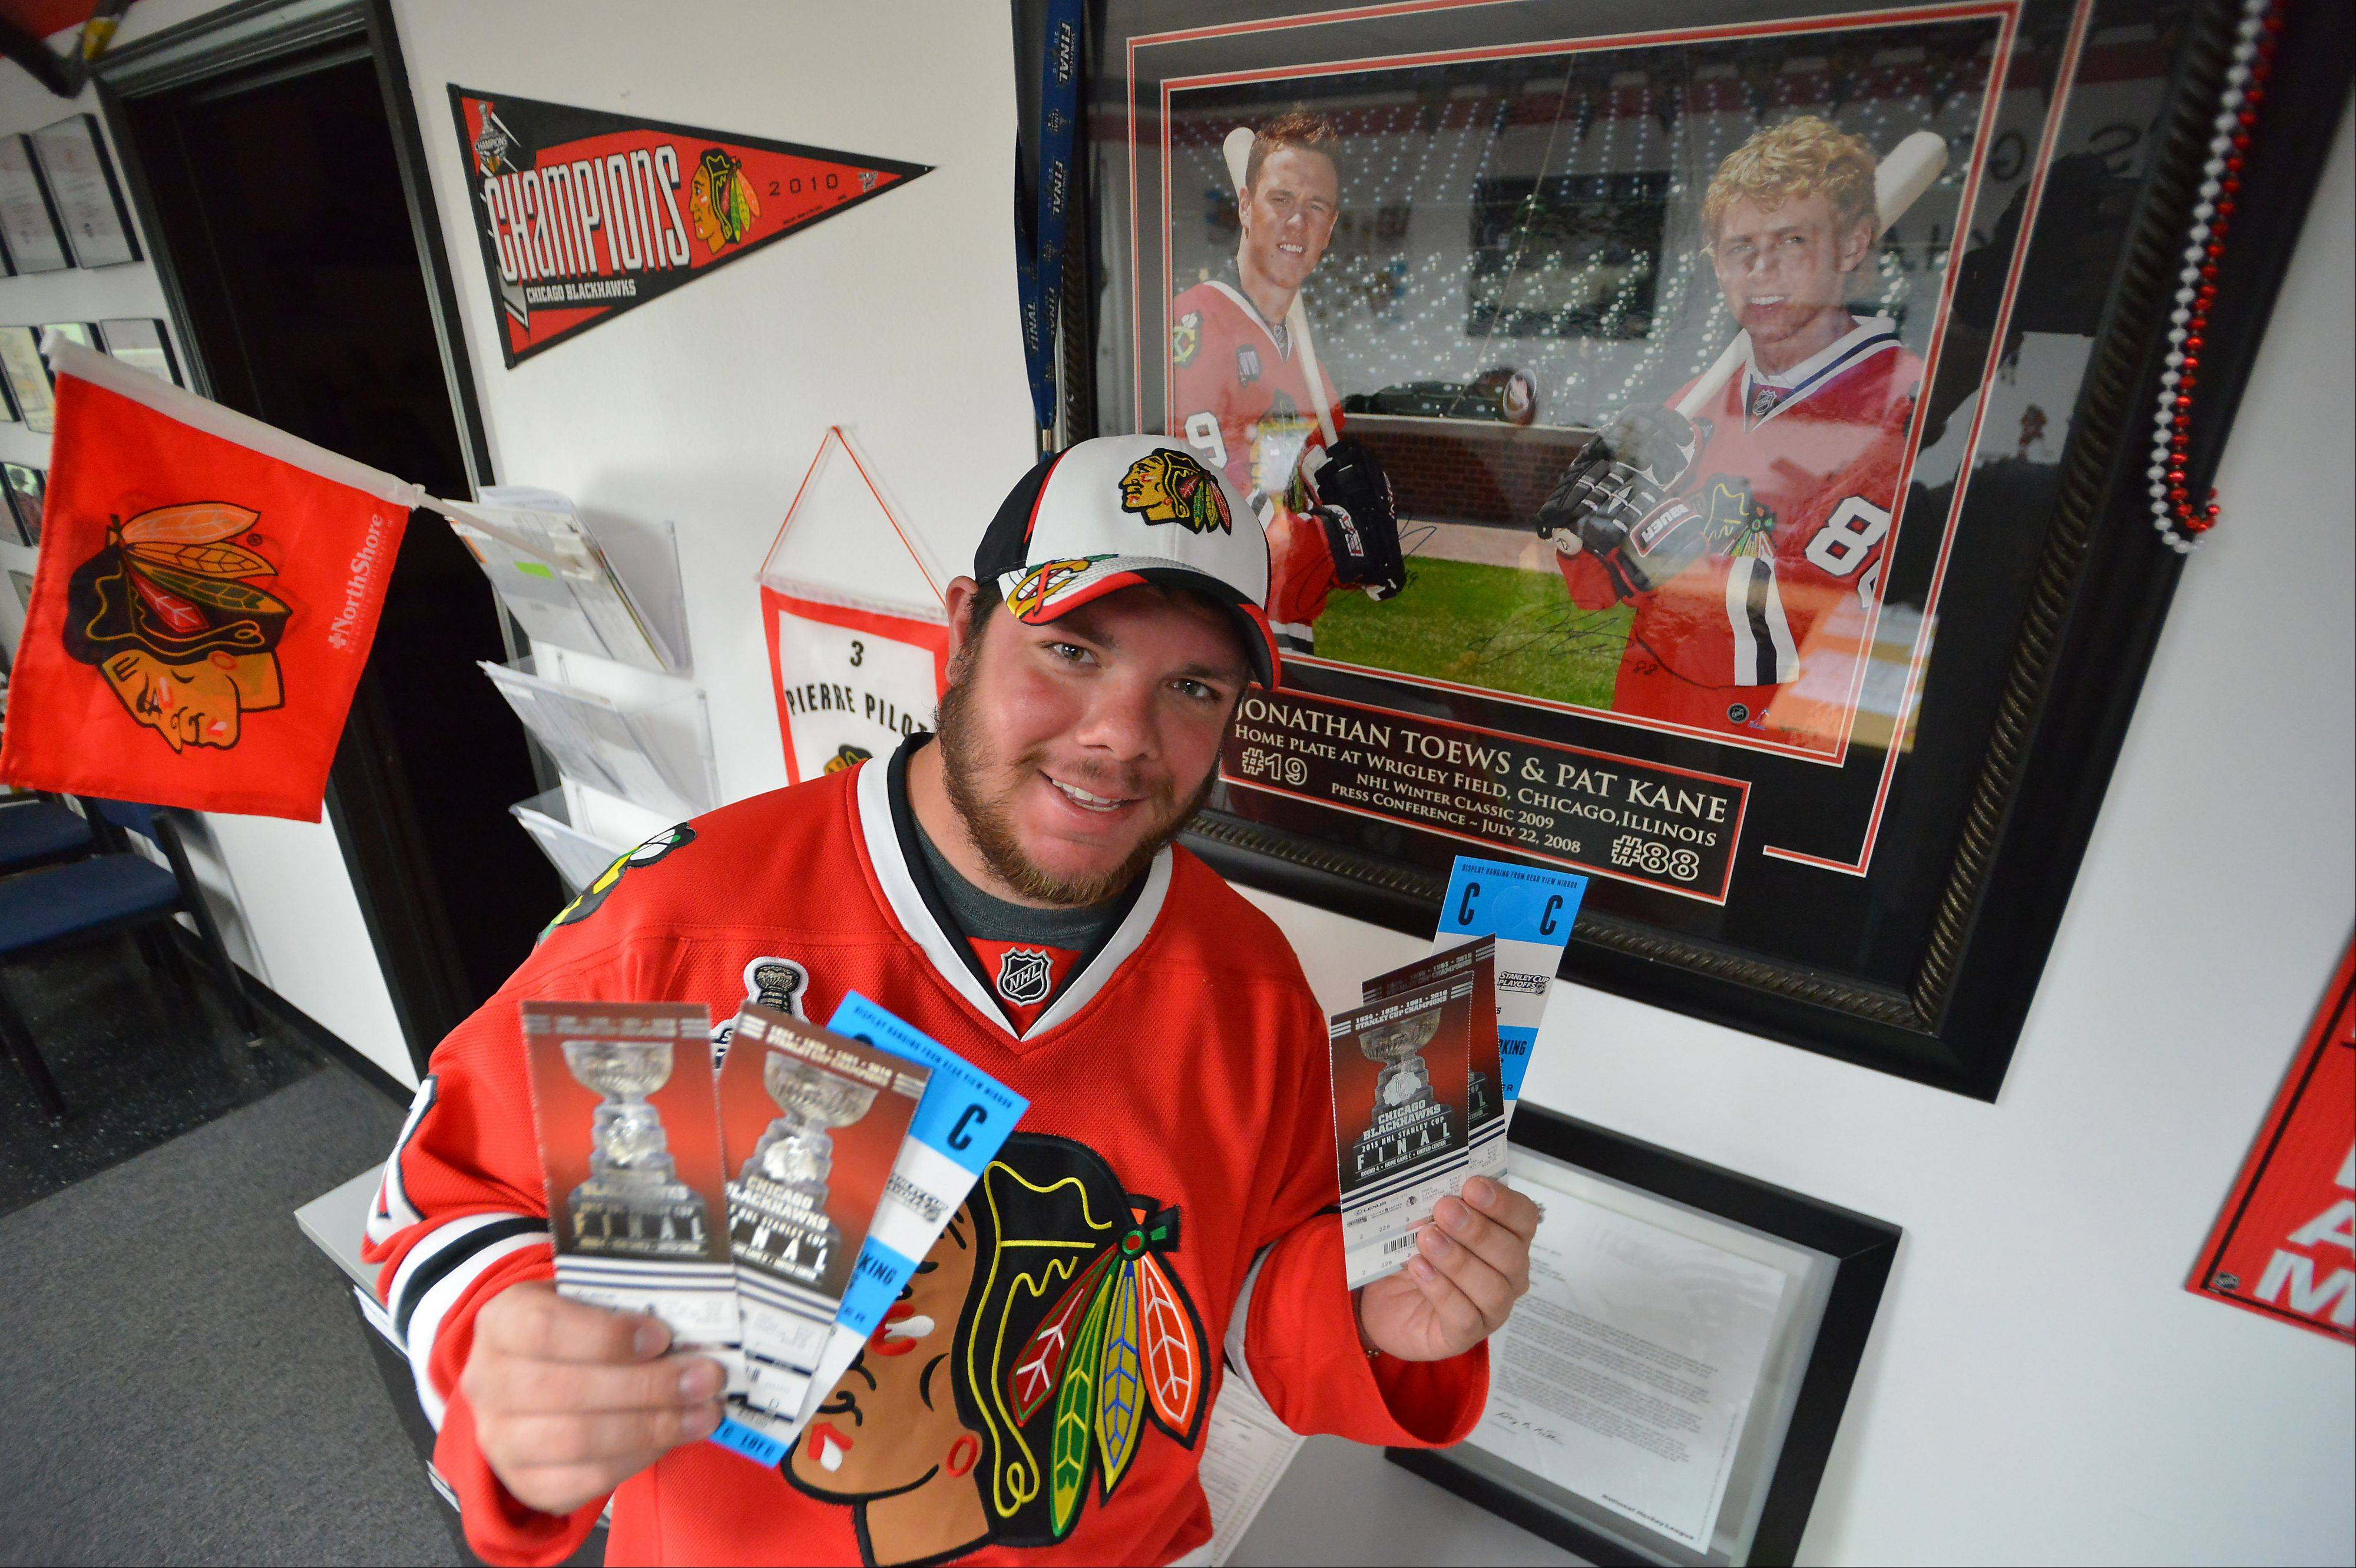 The family-run roofing company Protech of Des Plaines converted their office into a Chicago Blackhawks shrine with Bille Marcum showing off his tickets to Games 5 and 7 of the Stanley Cup Finals. Will there be a Game 7?